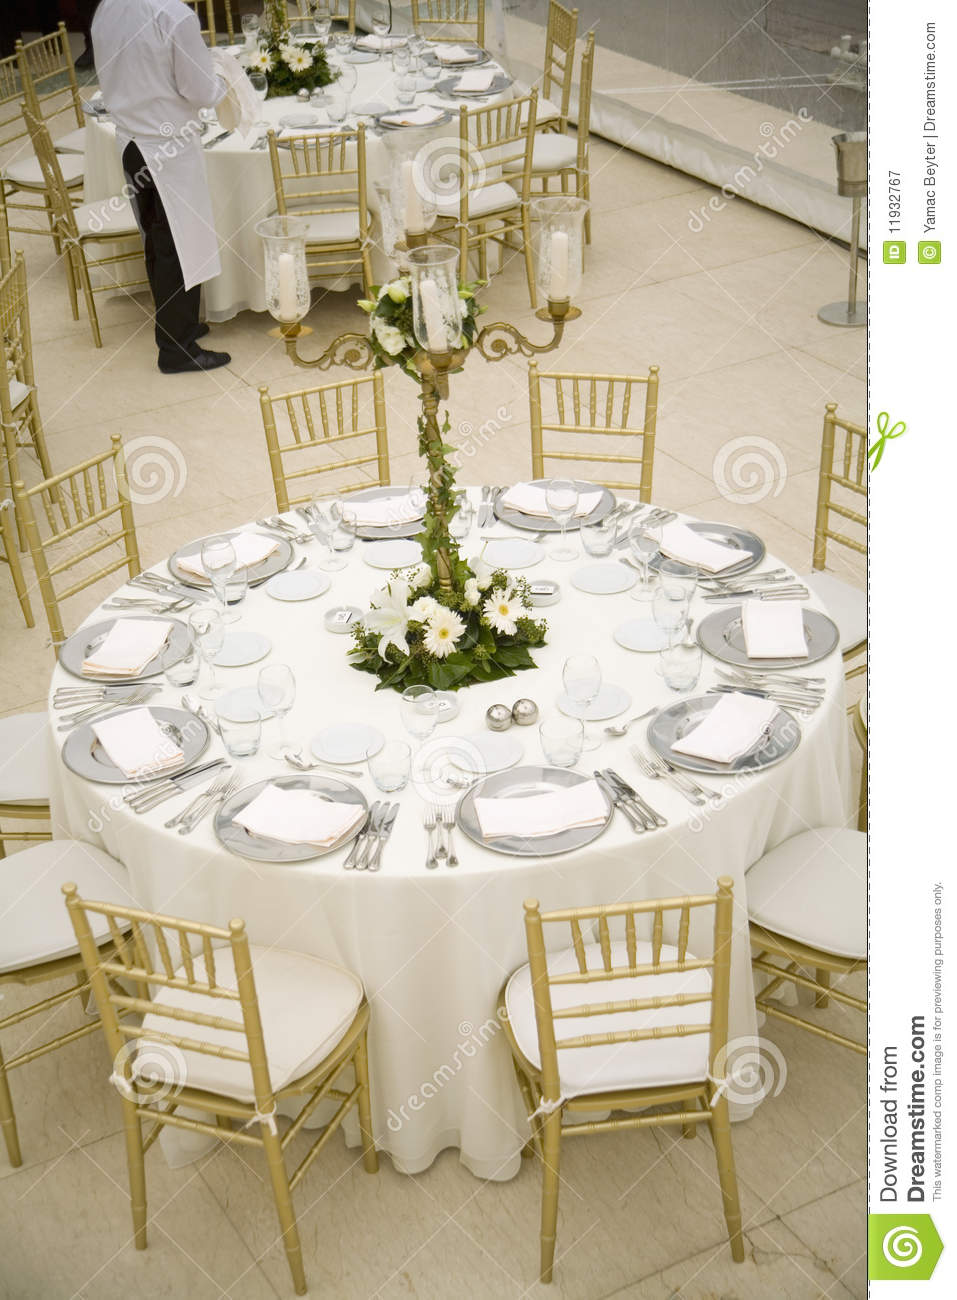 Royalty Free Stock Photography Wedding Table Setting In A